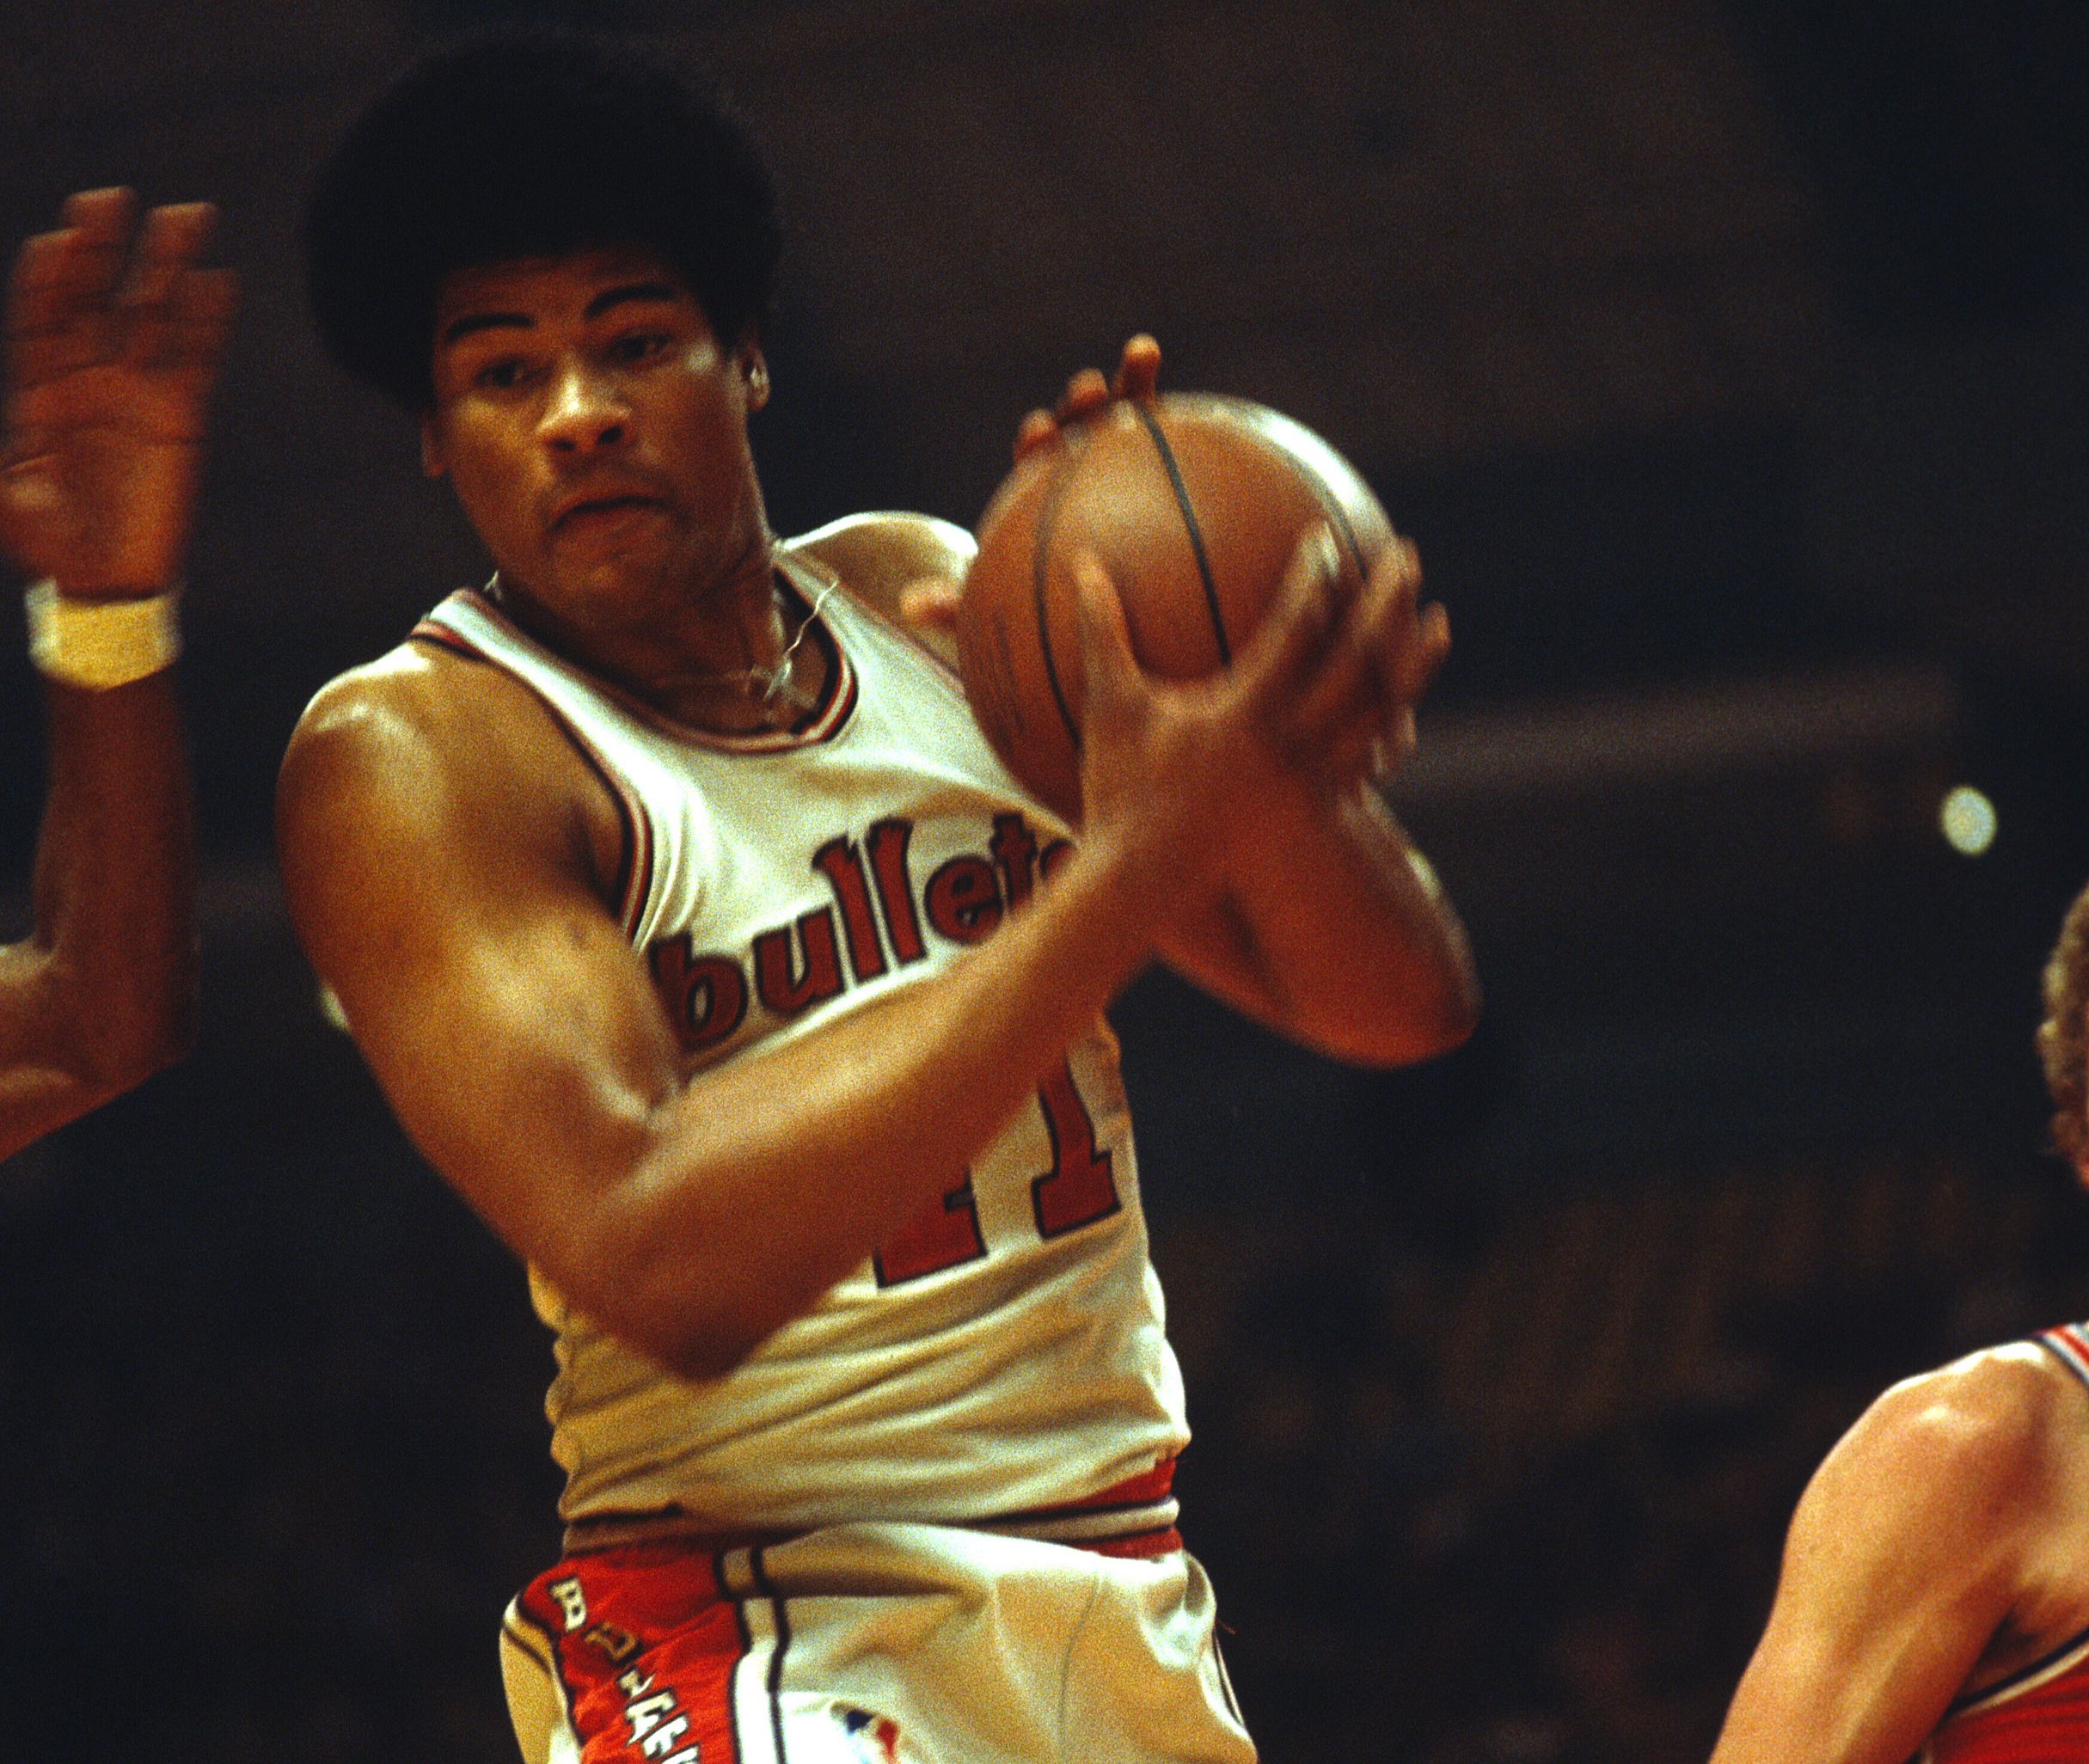 wes unseld - photo #30